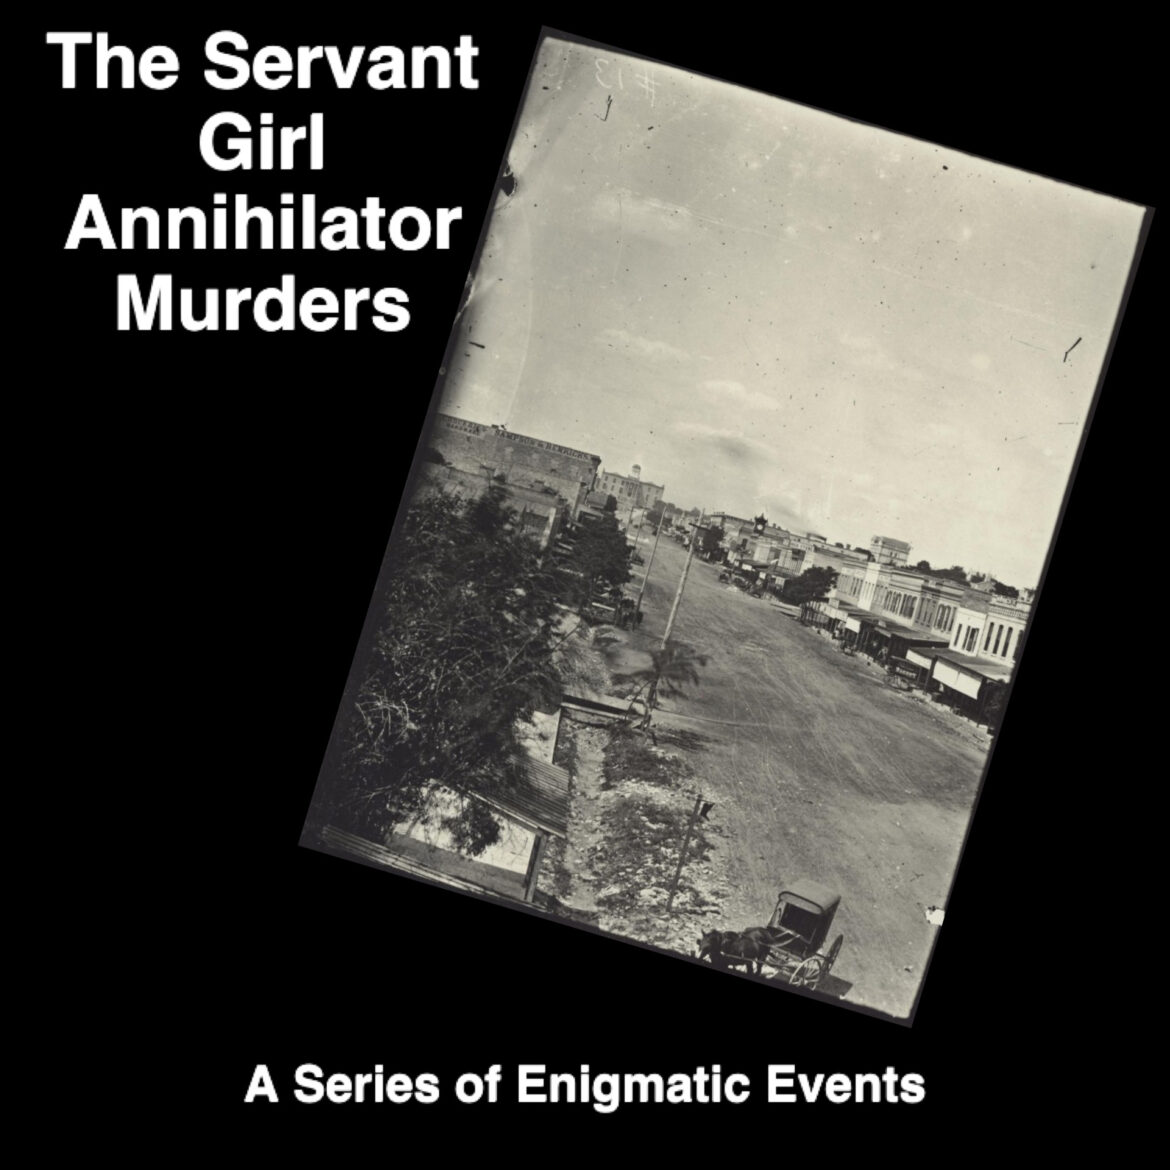 Series of Enigmatic Events: Servant Girl Annihilator Murders